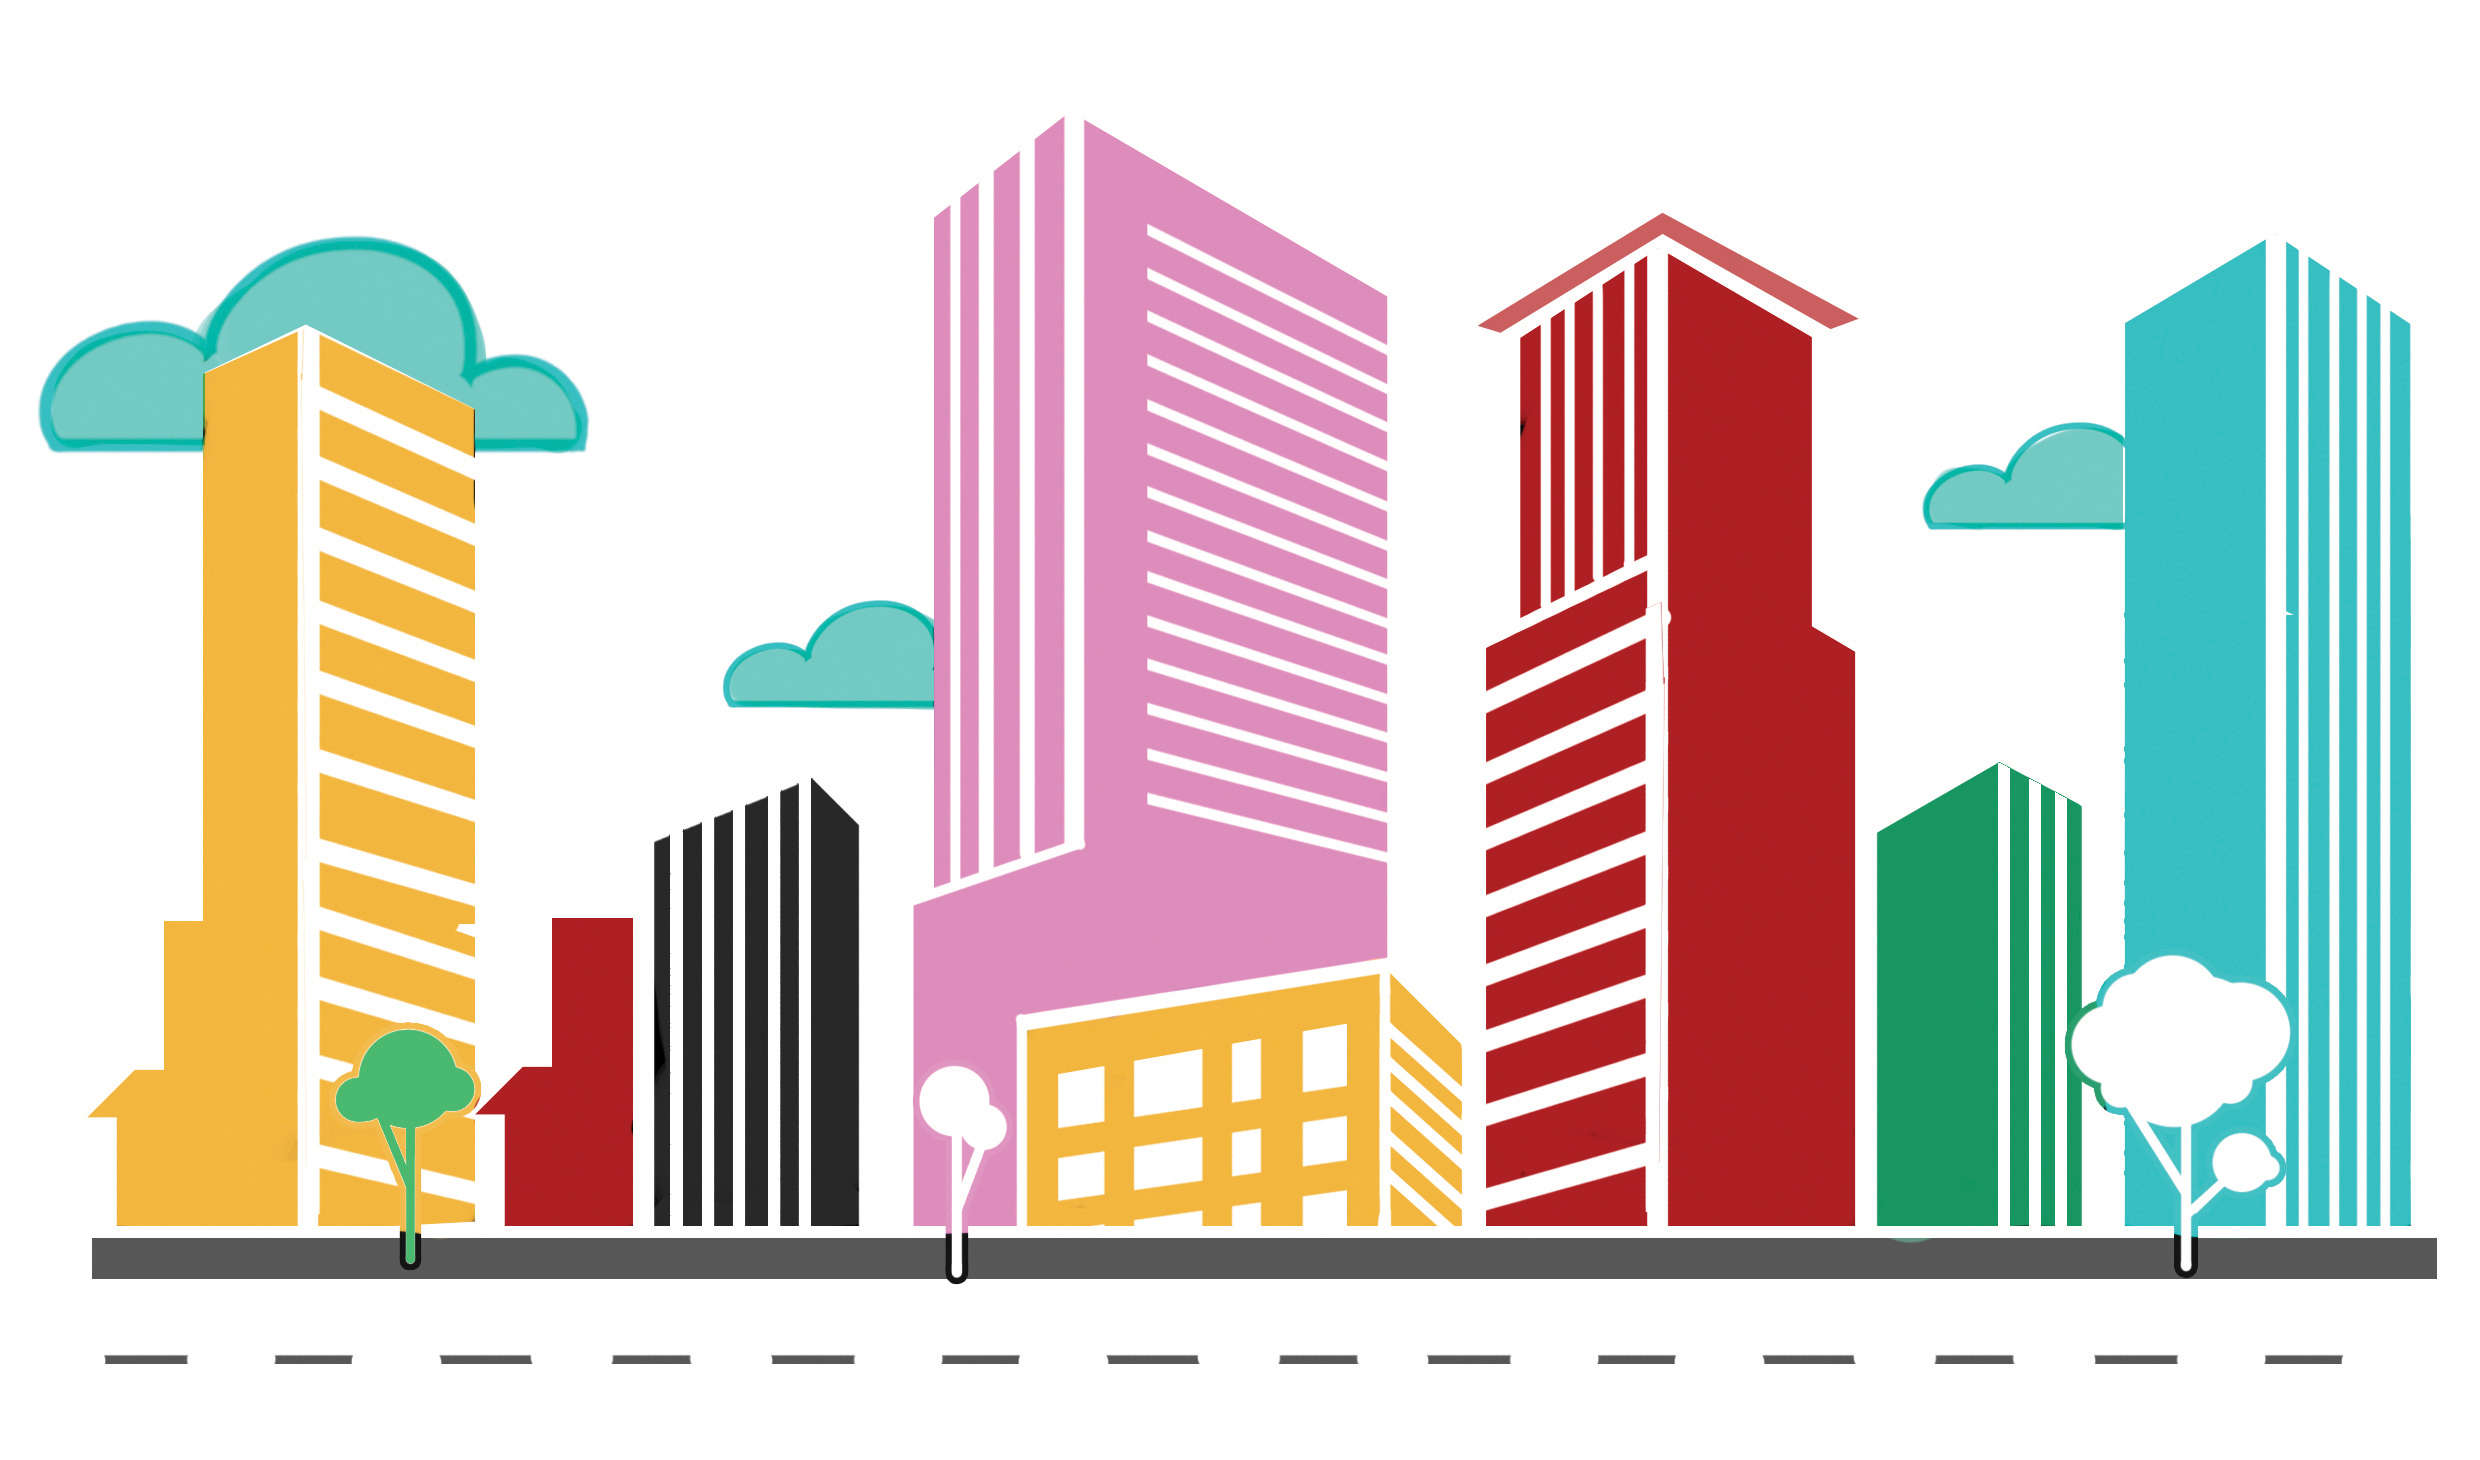 Tendering process of Smart City projects under scrutiny